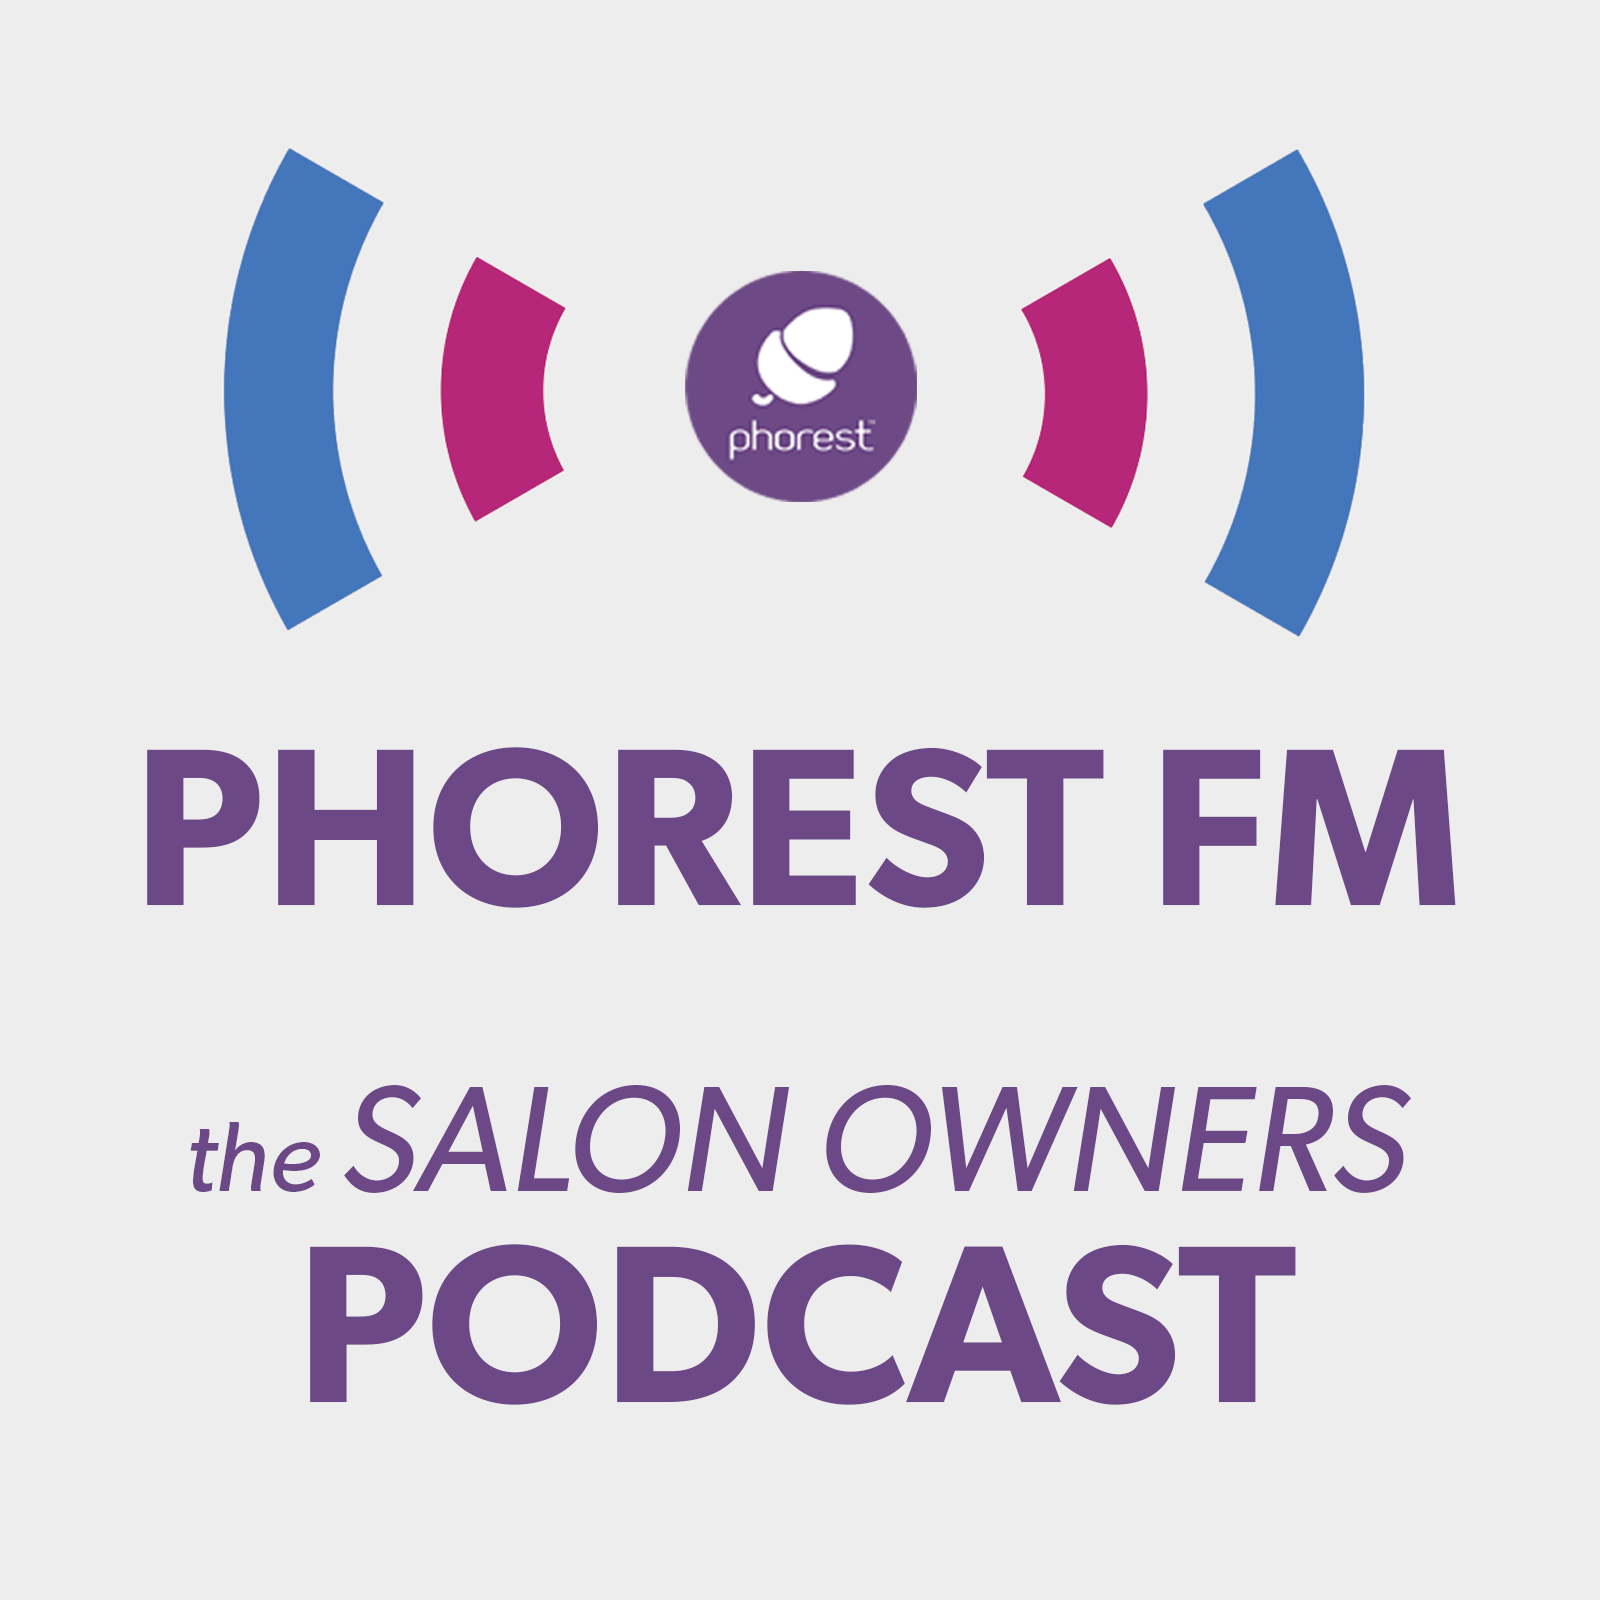 Salon Marketing & Finances: Black Friday Campaigns, Social Media Tools And Tax Inspections